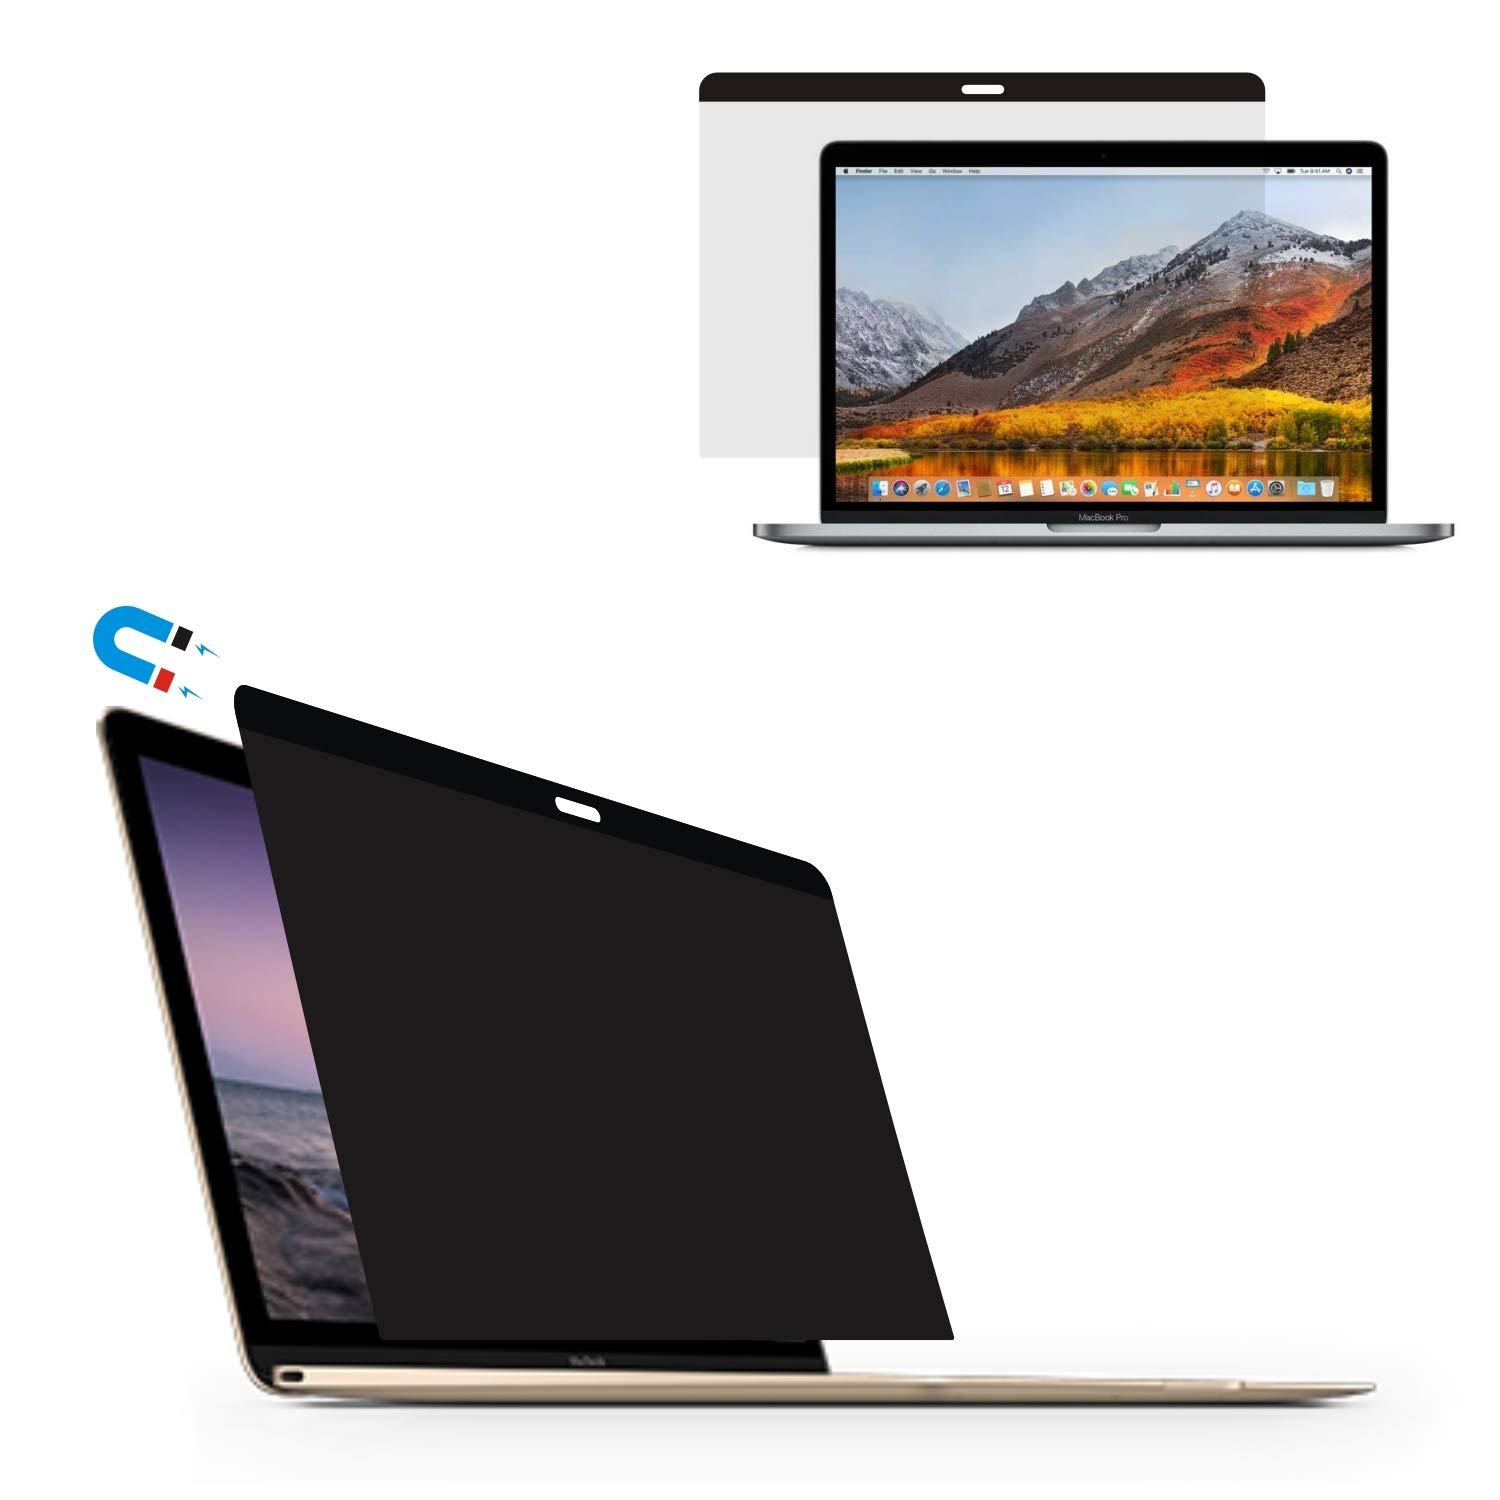 Accgonon Automatic Adsorption Laptop Privacy Screen Protectors Filter for MacBook Pro 13-inch (2012-mid 2015 Version,Model:A1502 and A1425) Anti-Glare Anti-Spy Scratch and UV Protection Easy On/Off by ACCGONON (Image #1)